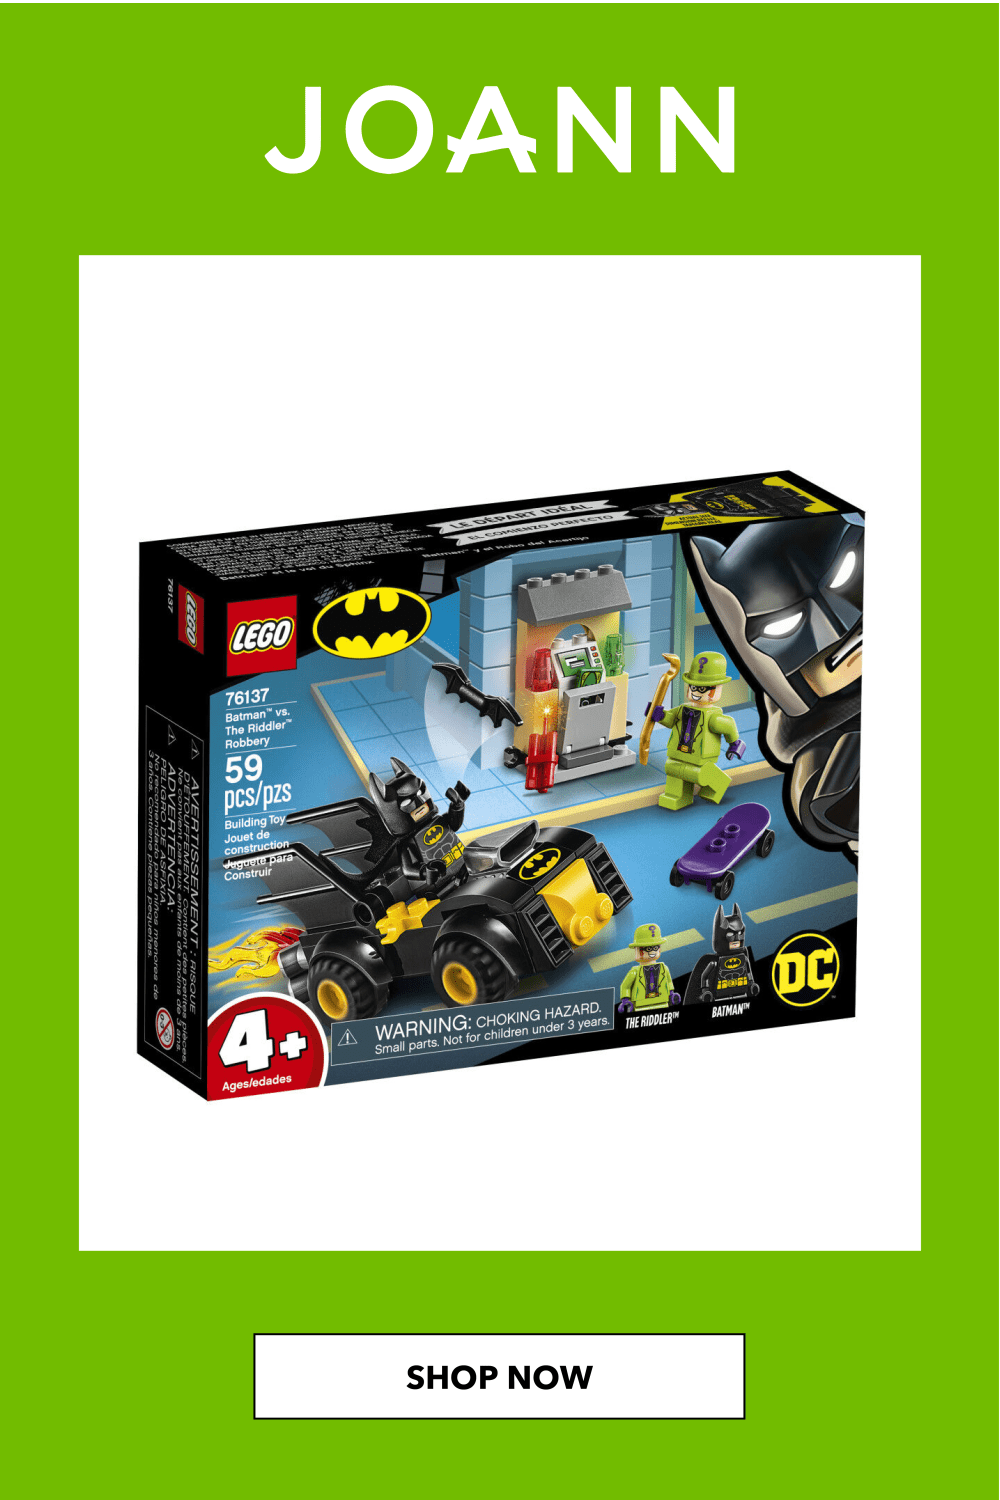 LEGO DC Batman 76137 Batman vs. The Riddler Robbery in